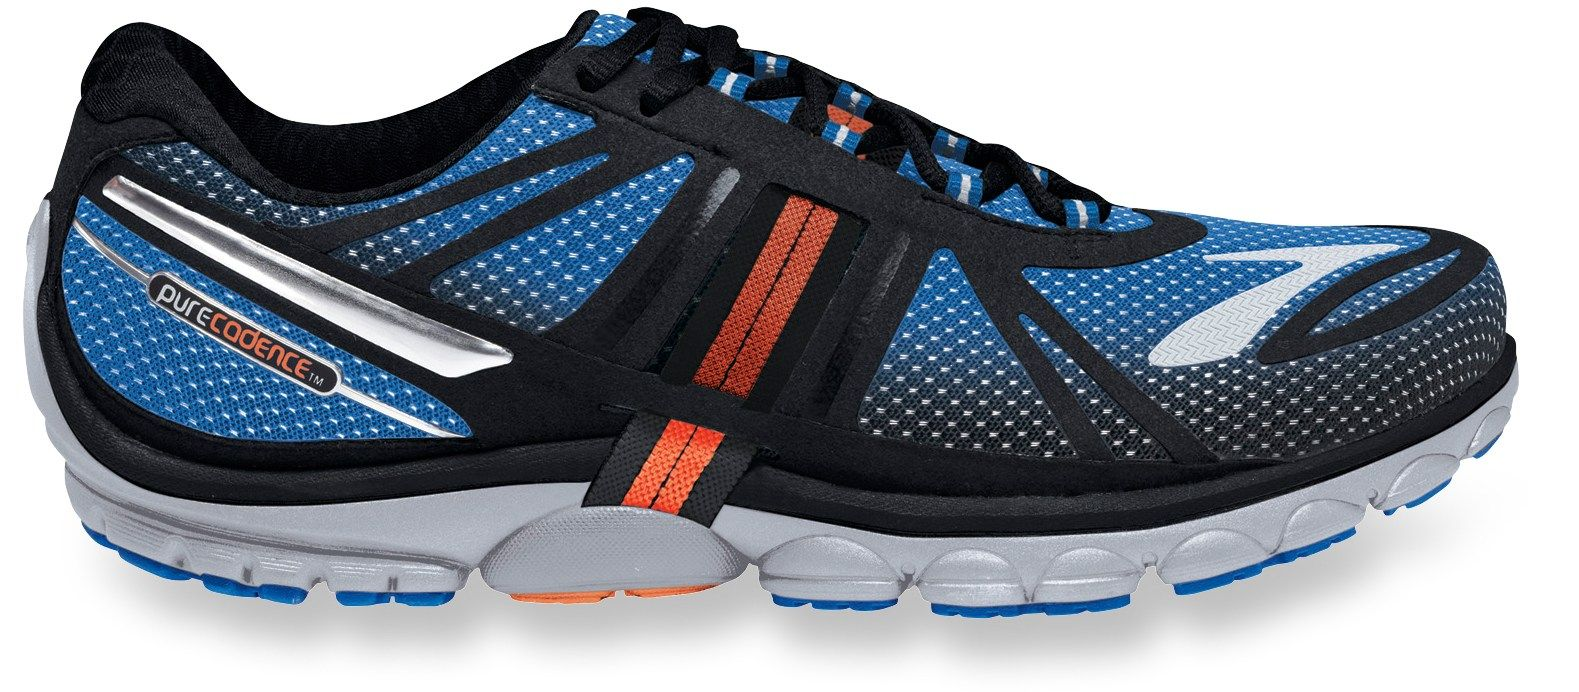 b2915002b4e Brooks PureCadence 2 Road-Running Shoes is designed for cross training with  lots of lateral movement like BodyCombat or Zumba...a Must have!!!